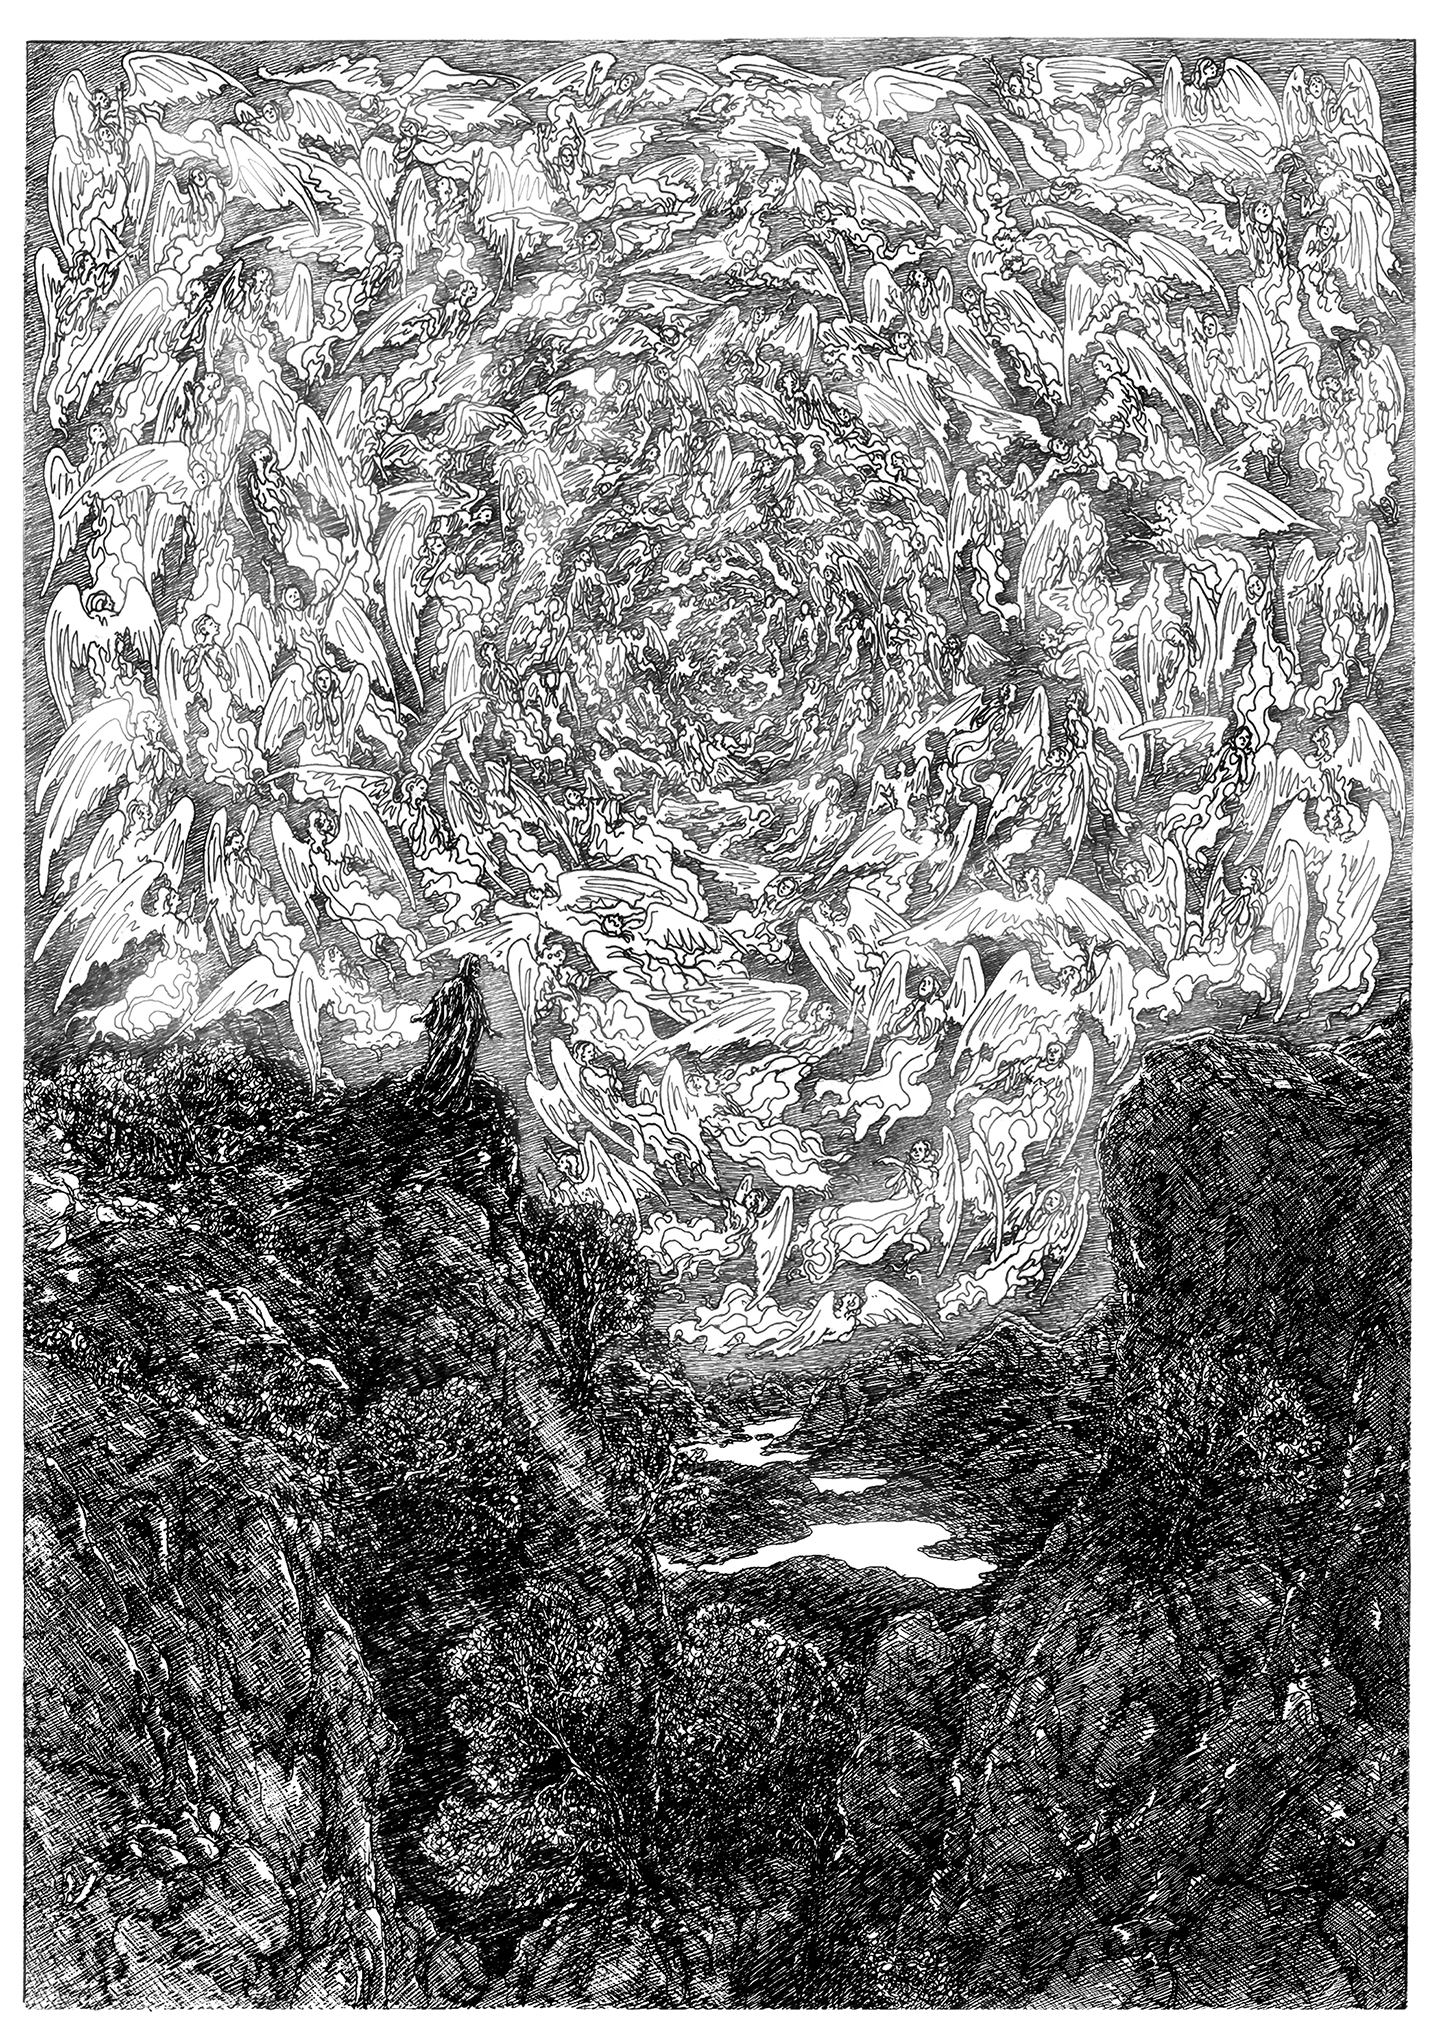 THUS SPAKE ZARATHUSTRA (PLATE #1) - Zarathustra's Prologue 1 (Drawing, 15.7 W x 22.4 H in, 2100 X 2970 pixels, © 2015 C. Panzner, all rights reserved)sm